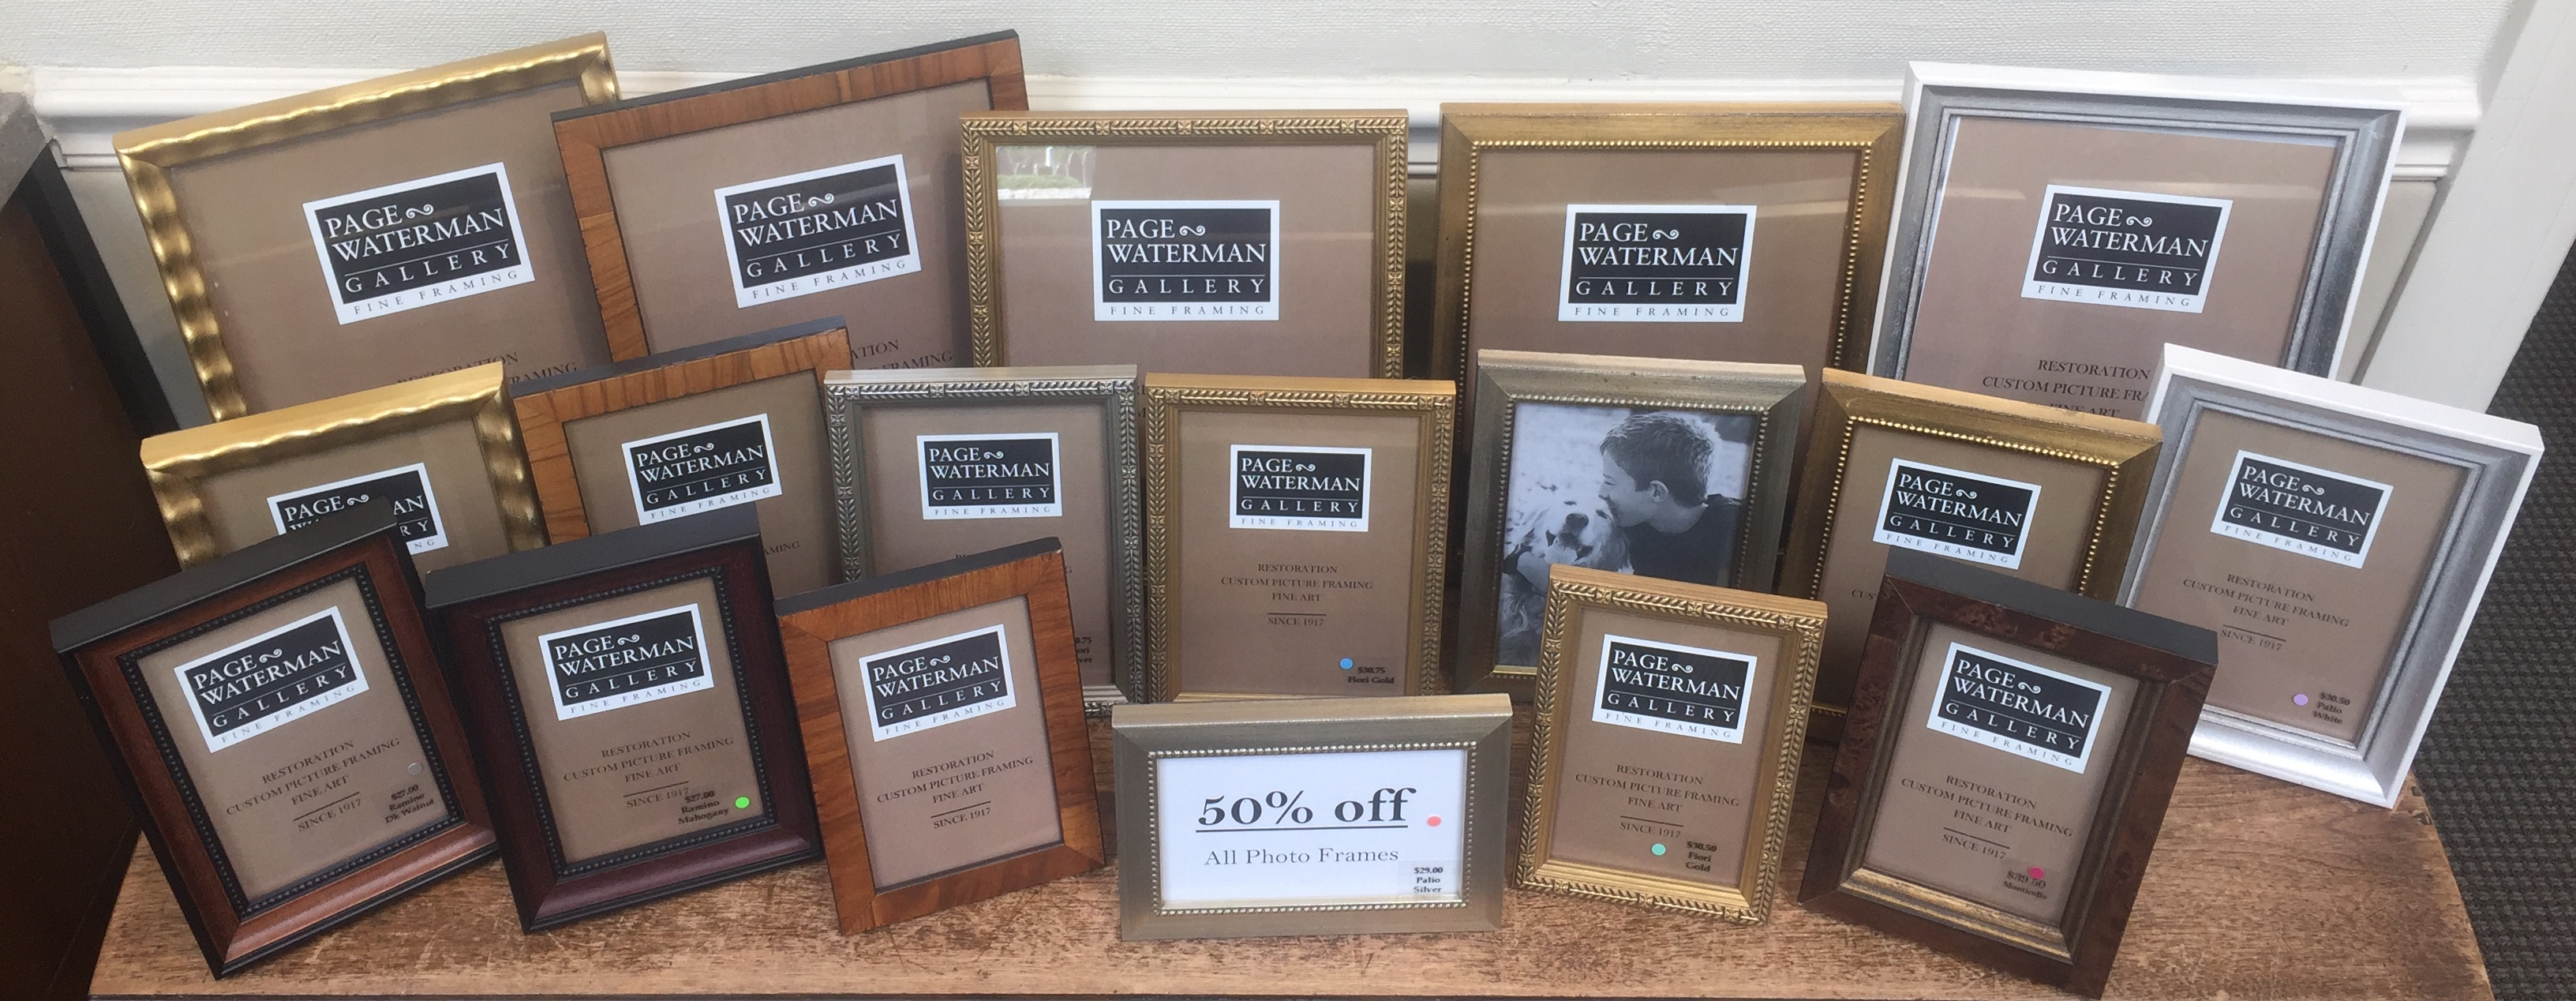 Photo frames at Page Waterman Fine Framing art 50% off